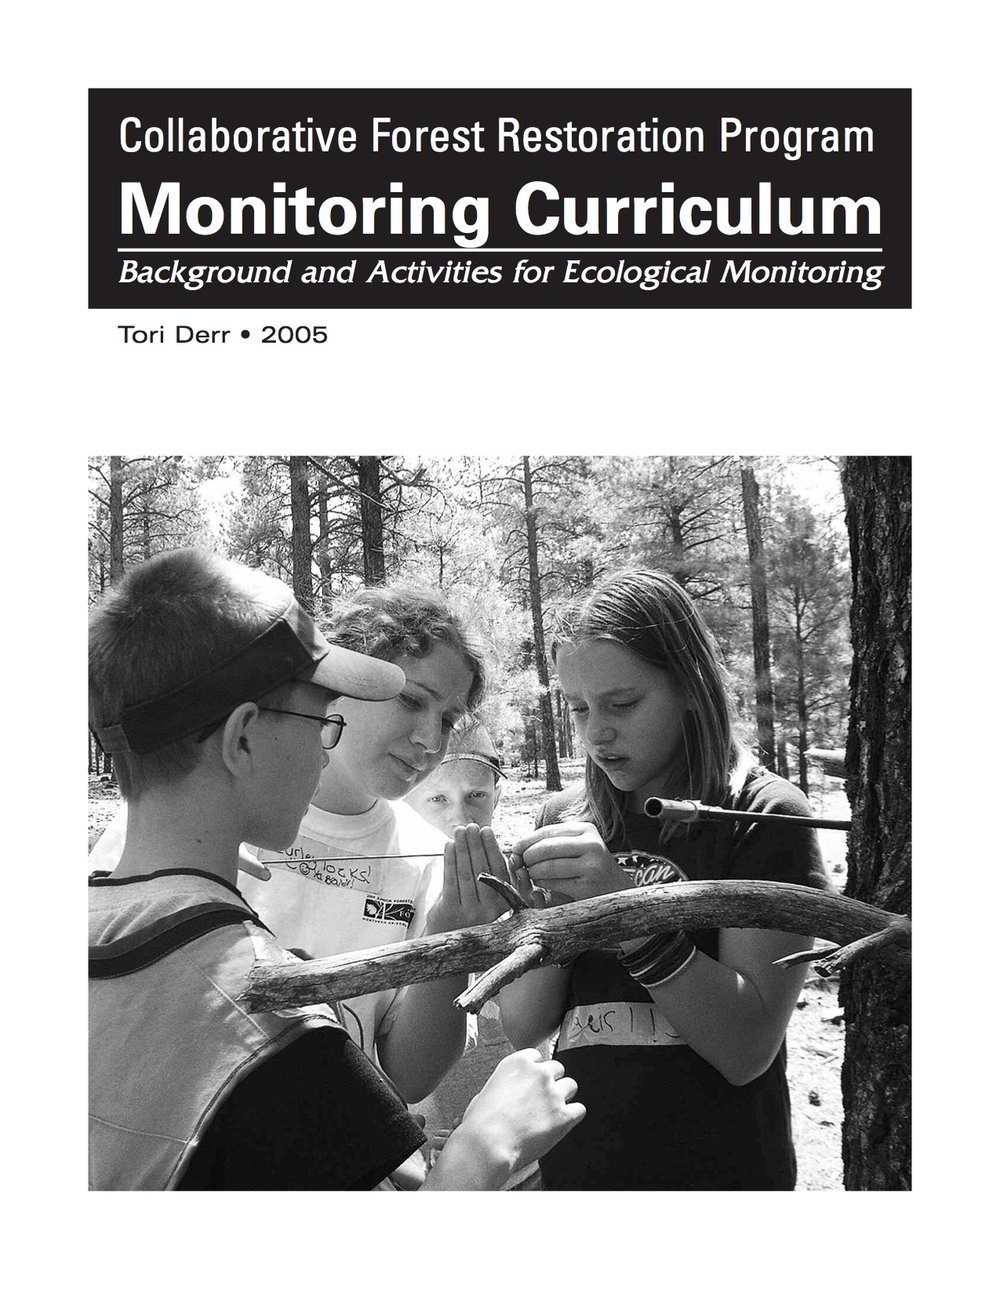 Collaborative Forest Restoration Program Monitoring Curriculum Background and Activities for Ecological Monitoring -